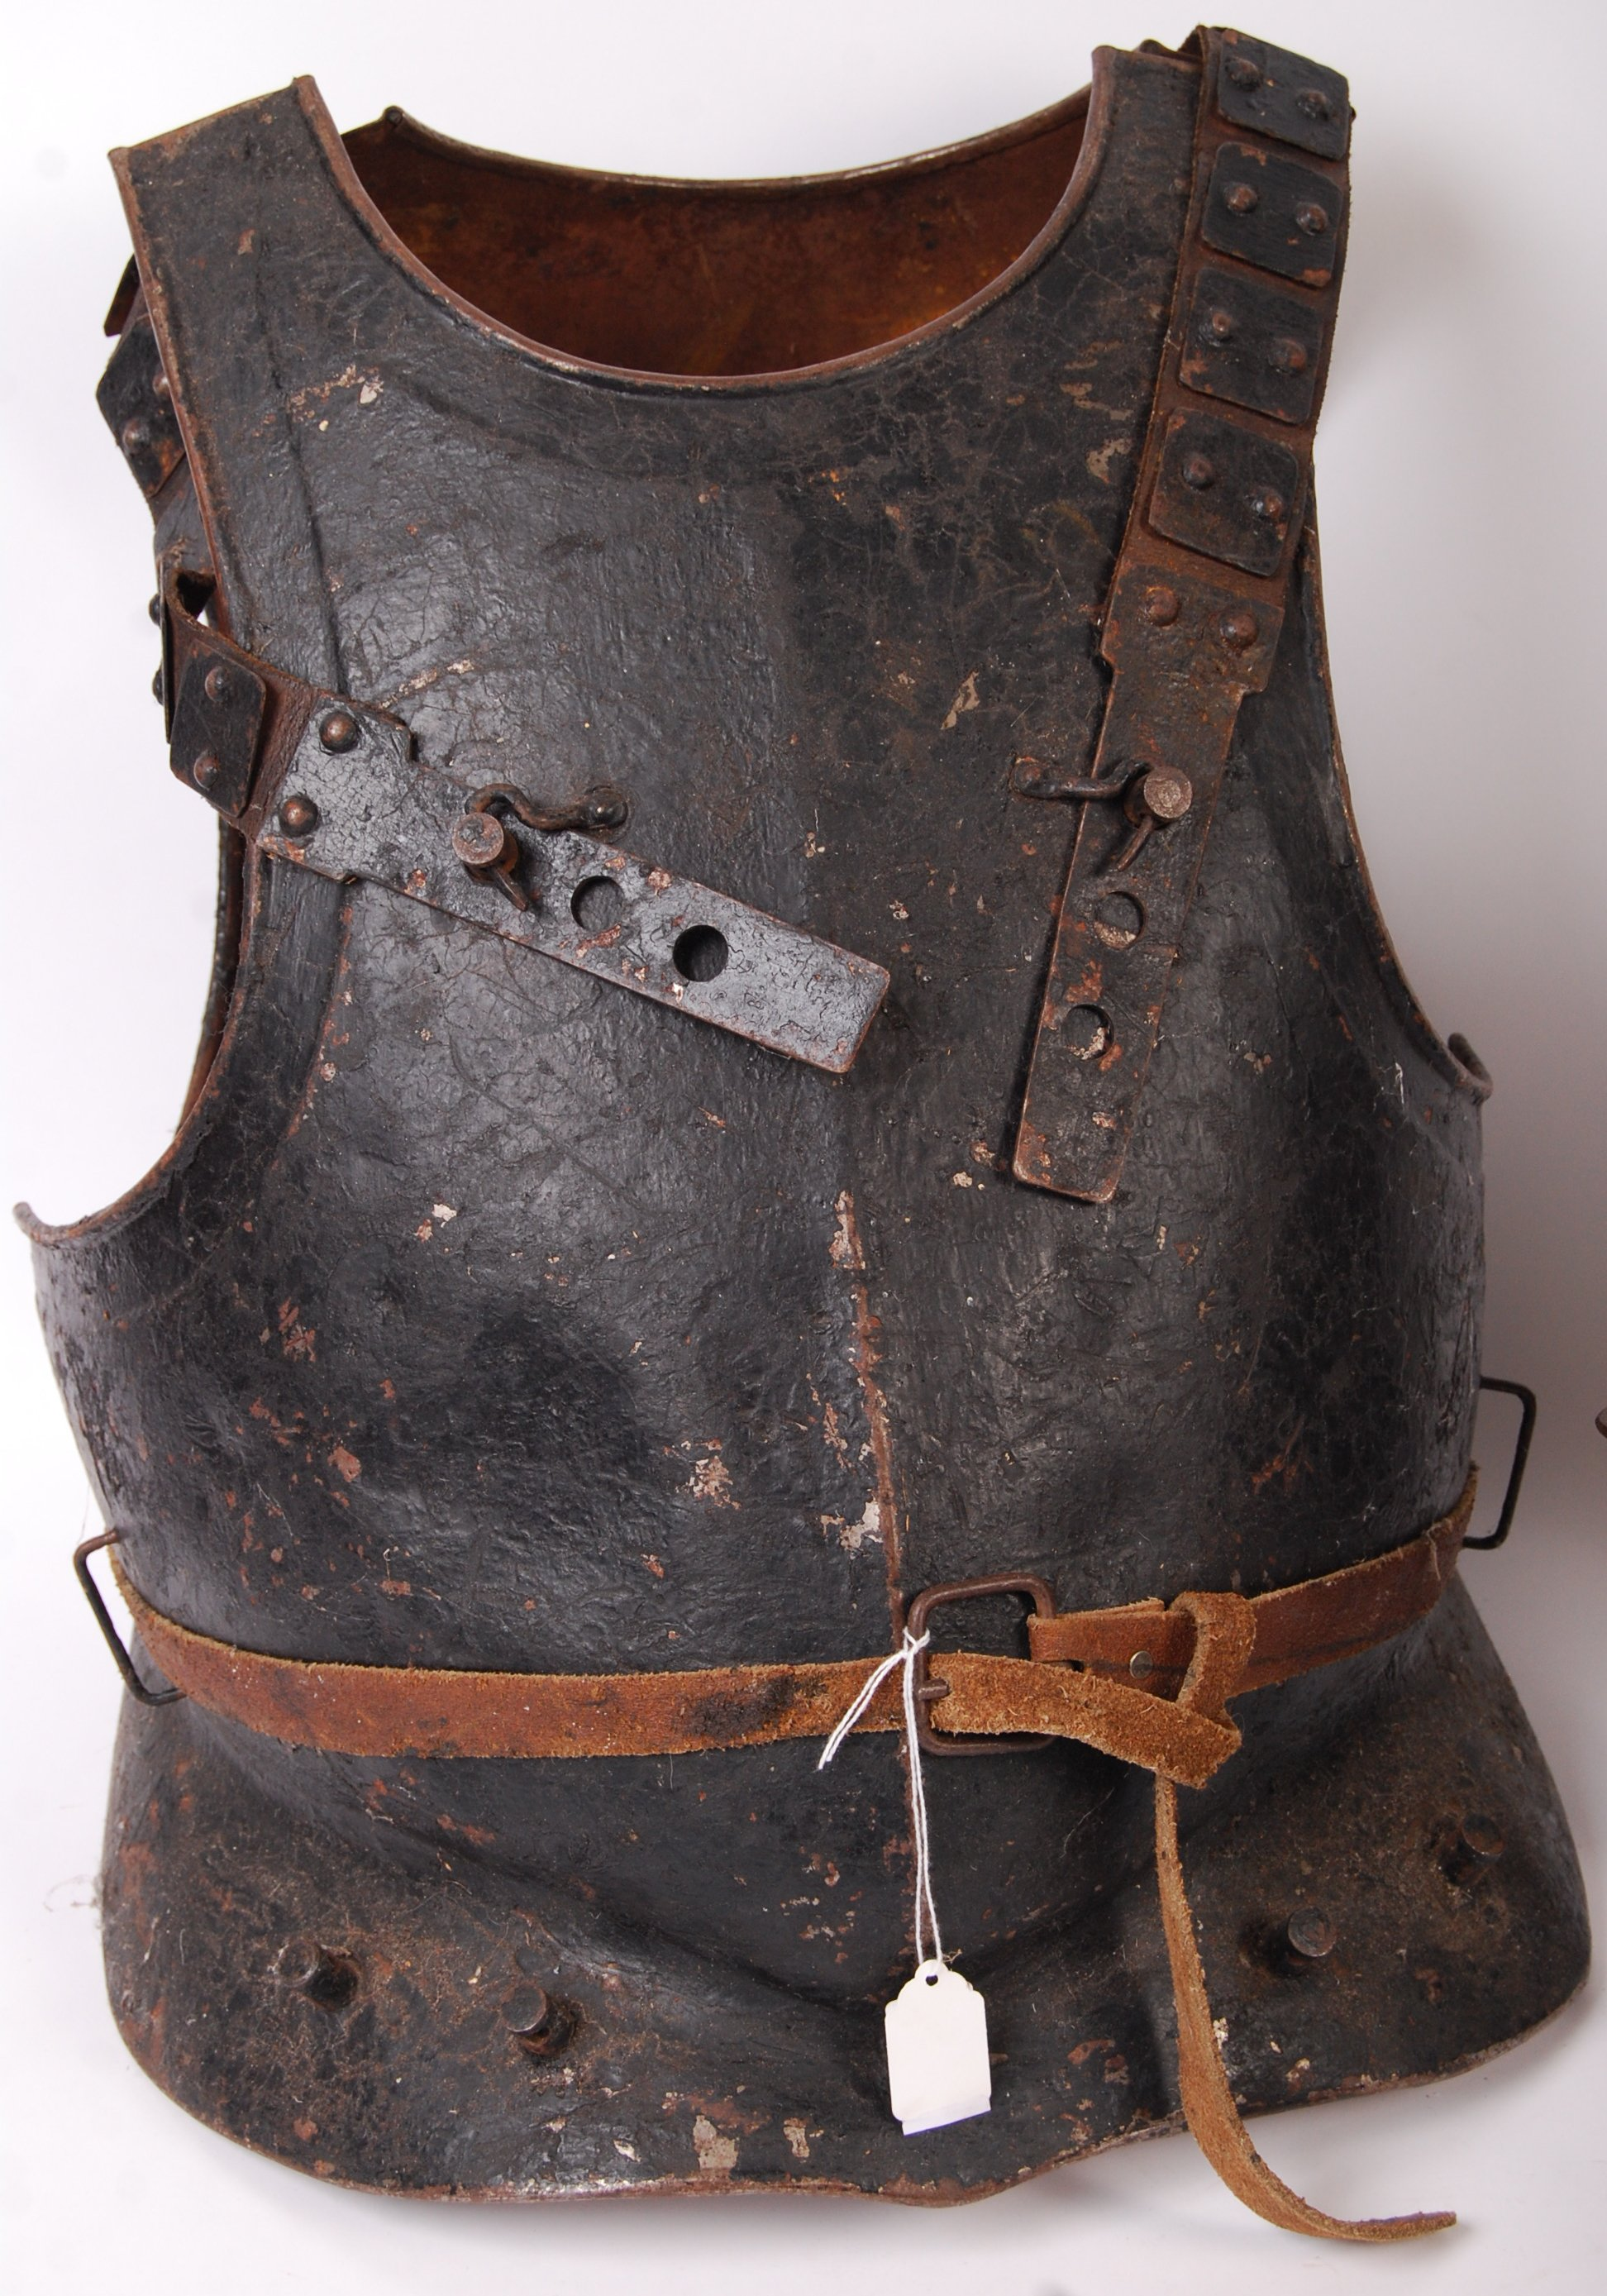 Lot 311 - REPRODUCTION 17TH CENTURY ENGLISH CIVIL WAR PARTIAL SUIT OF ARMOUR